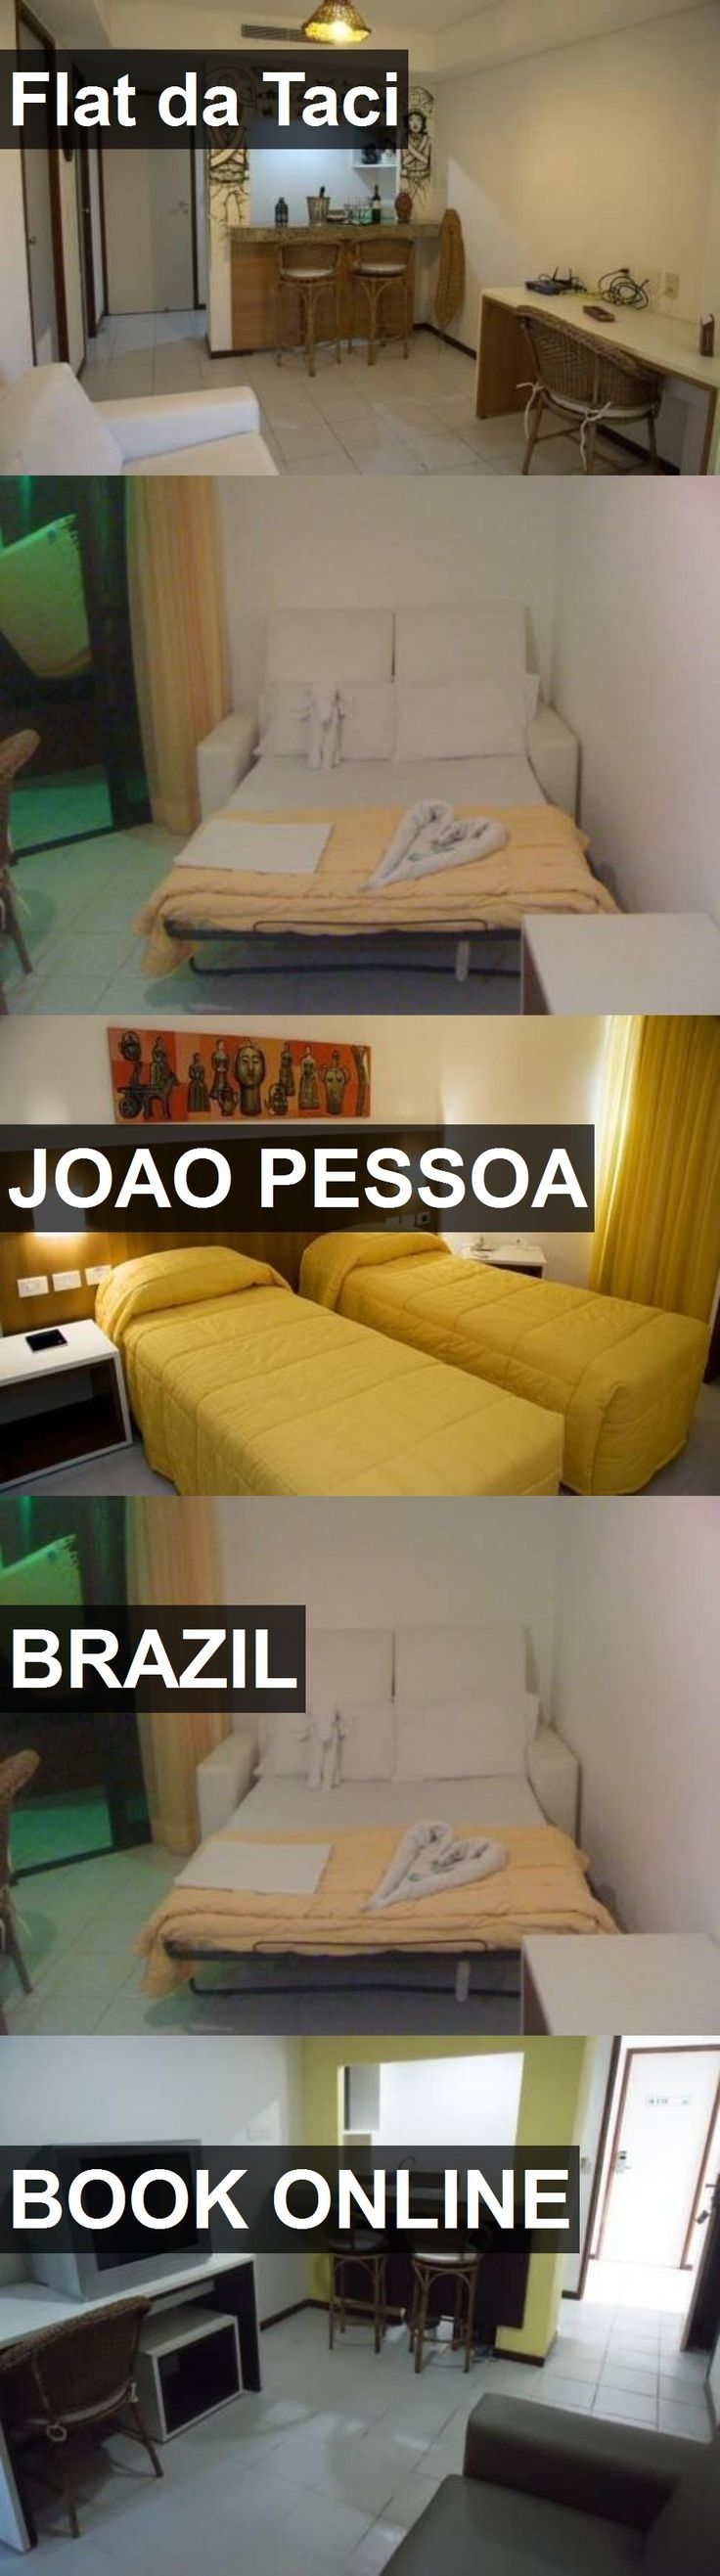 Hotel Flat da Taci in Joao Pessoa, Brazil. For more information, photos, reviews and best prices please follow the link. #Brazil #JoaoPessoa #travel #vacation #hotel